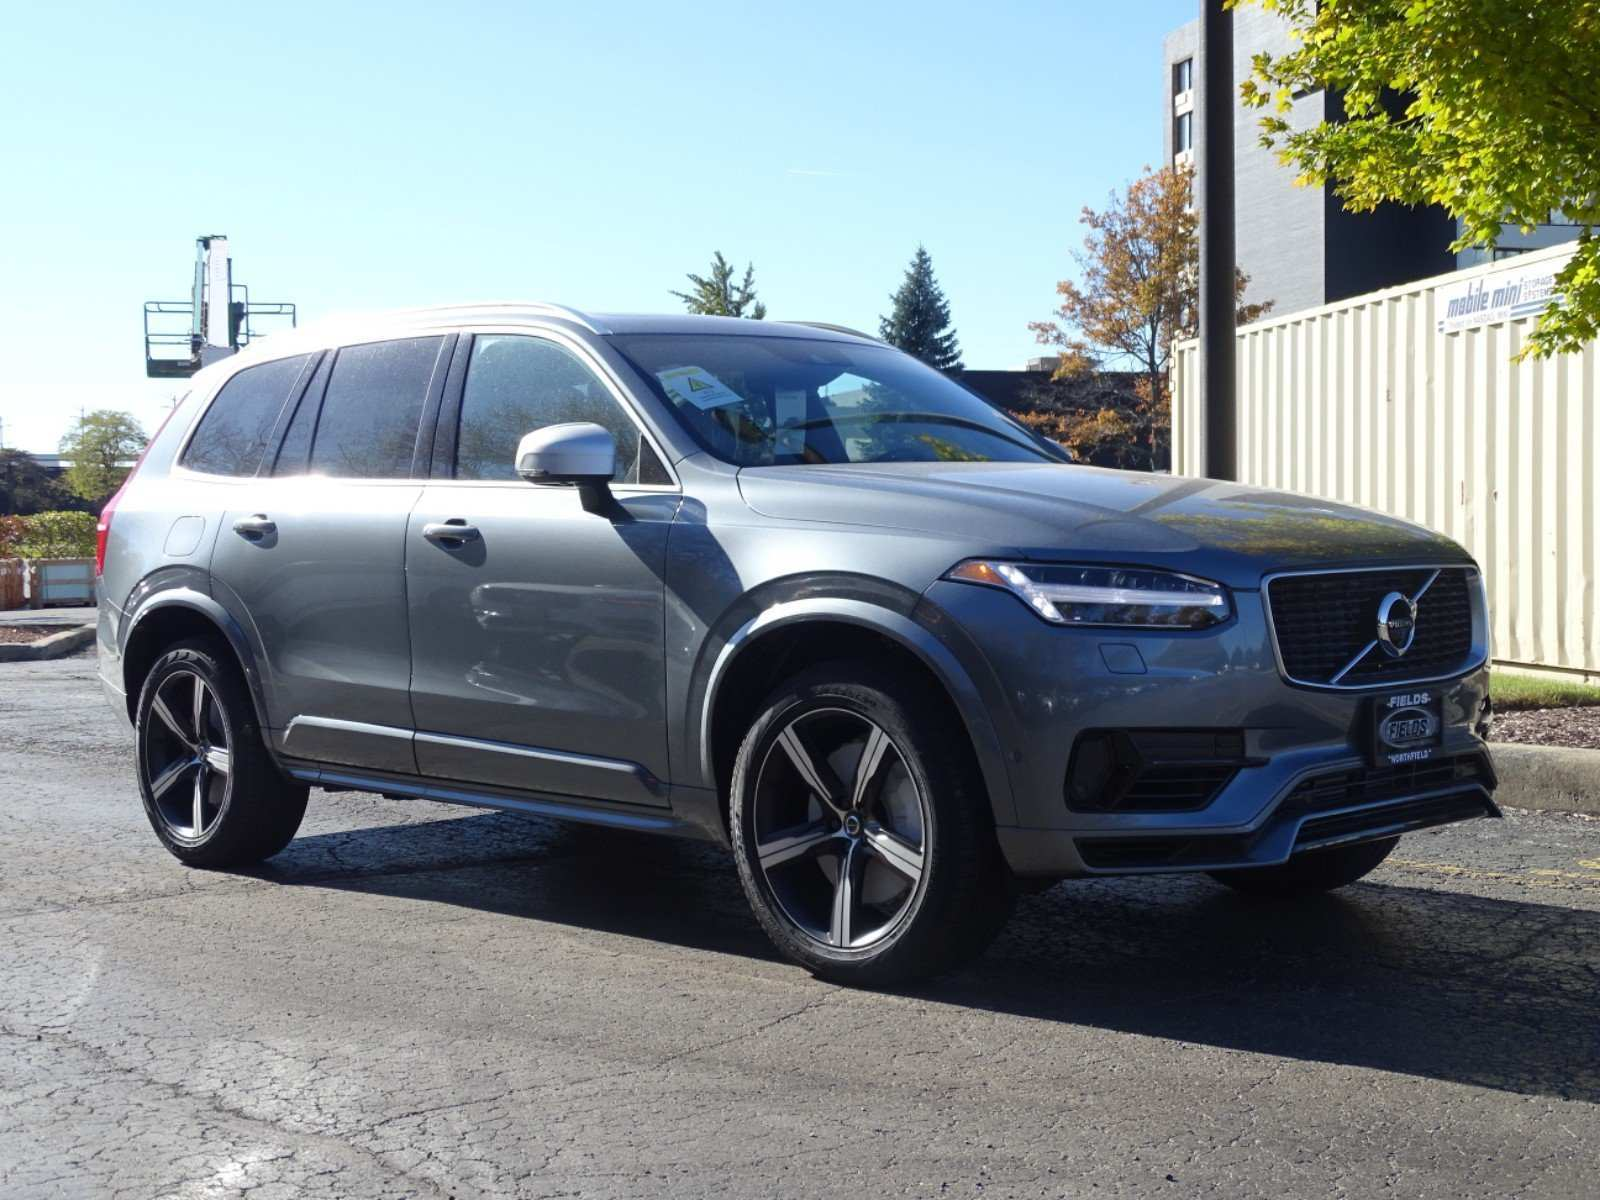 58 All New 2019 Volvo Xc90 T8 New Review